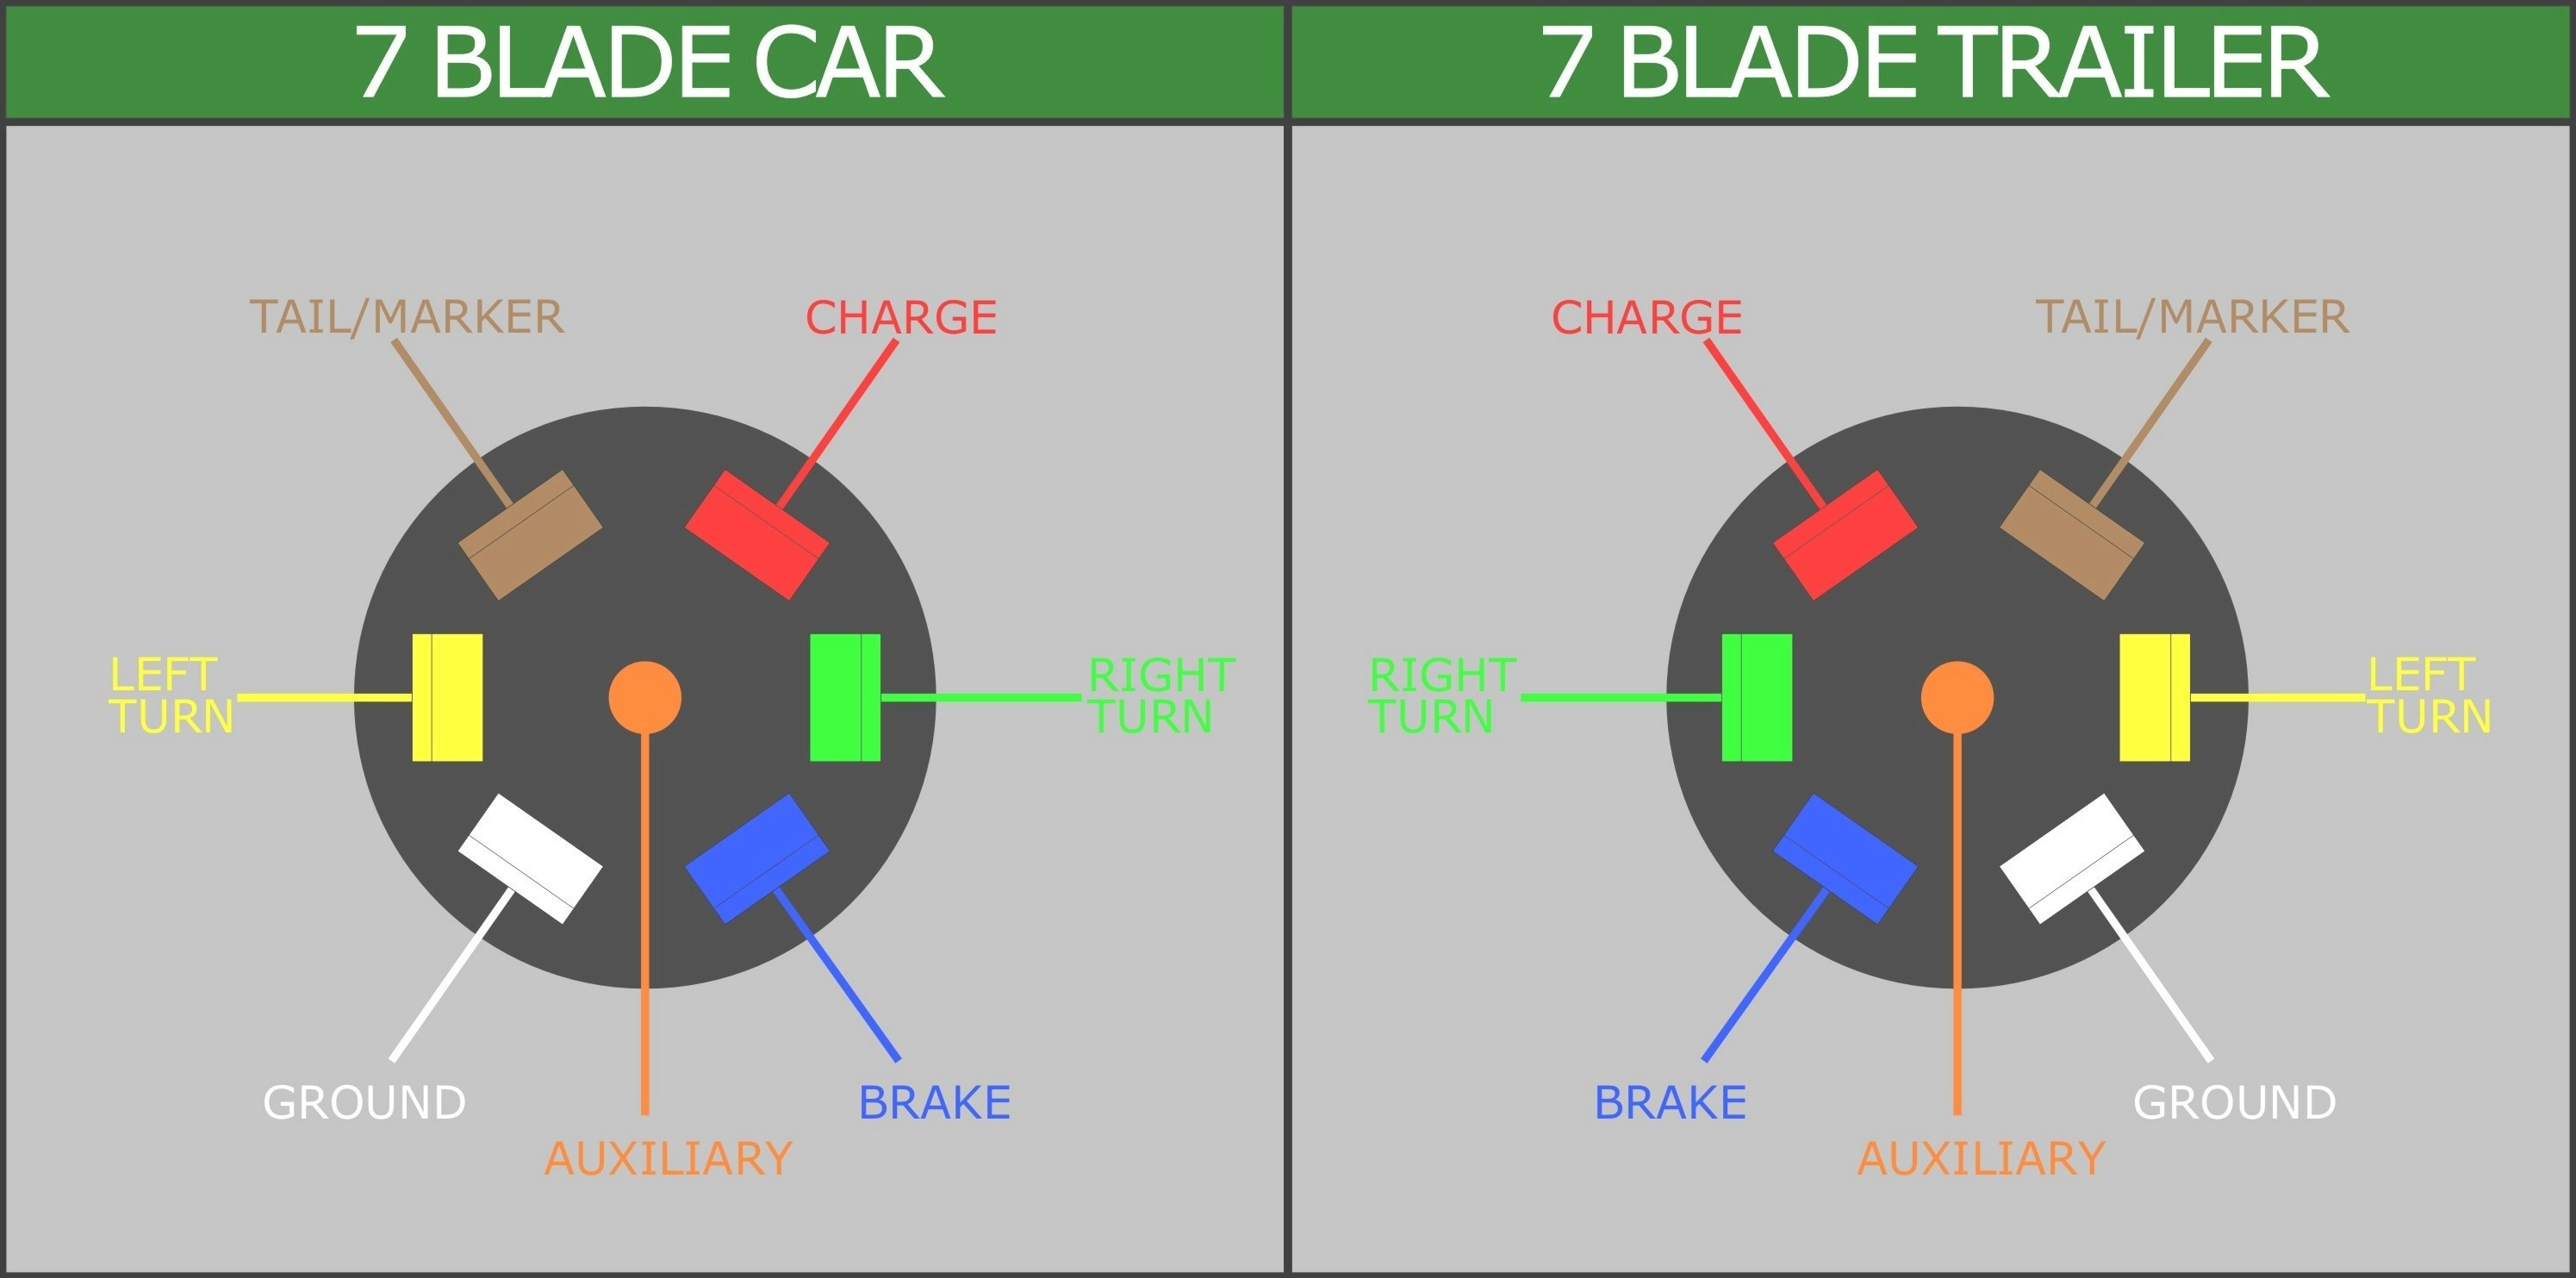 7 Blade To 4 Flat Adapter Wiring Diagram Rate Wiring Diagram For 7 - 4 Blade Trailer Plug Wiring Diagram